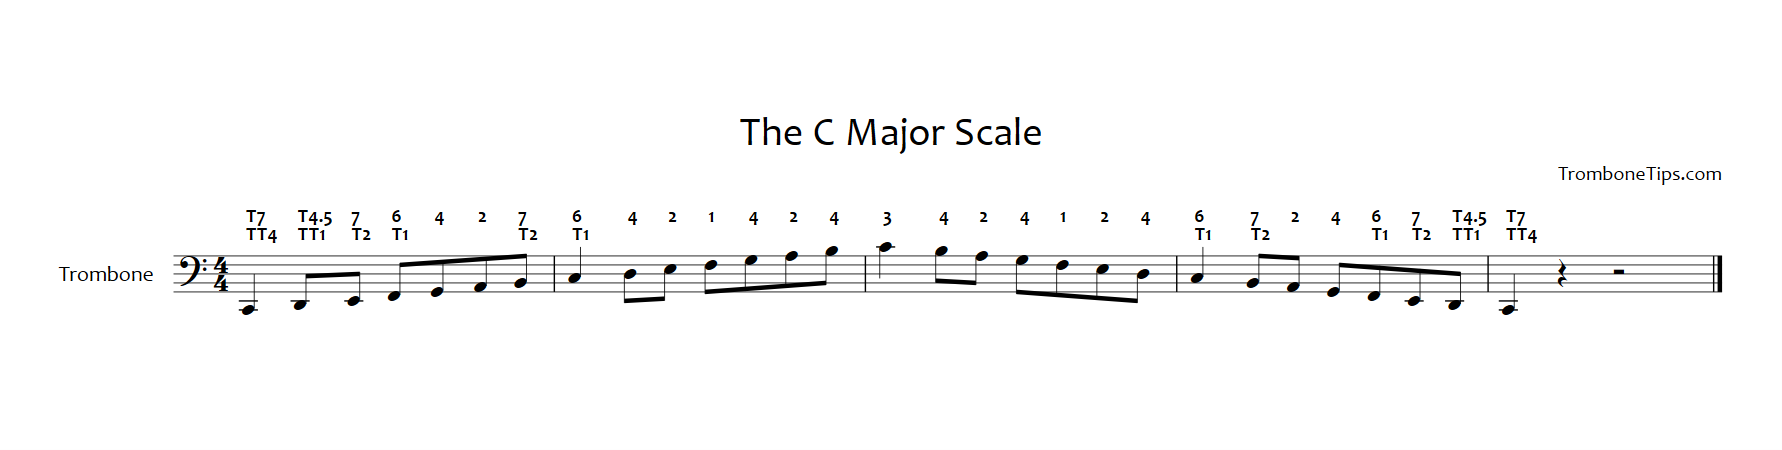 how to play the c major scale on trombone trombone tips